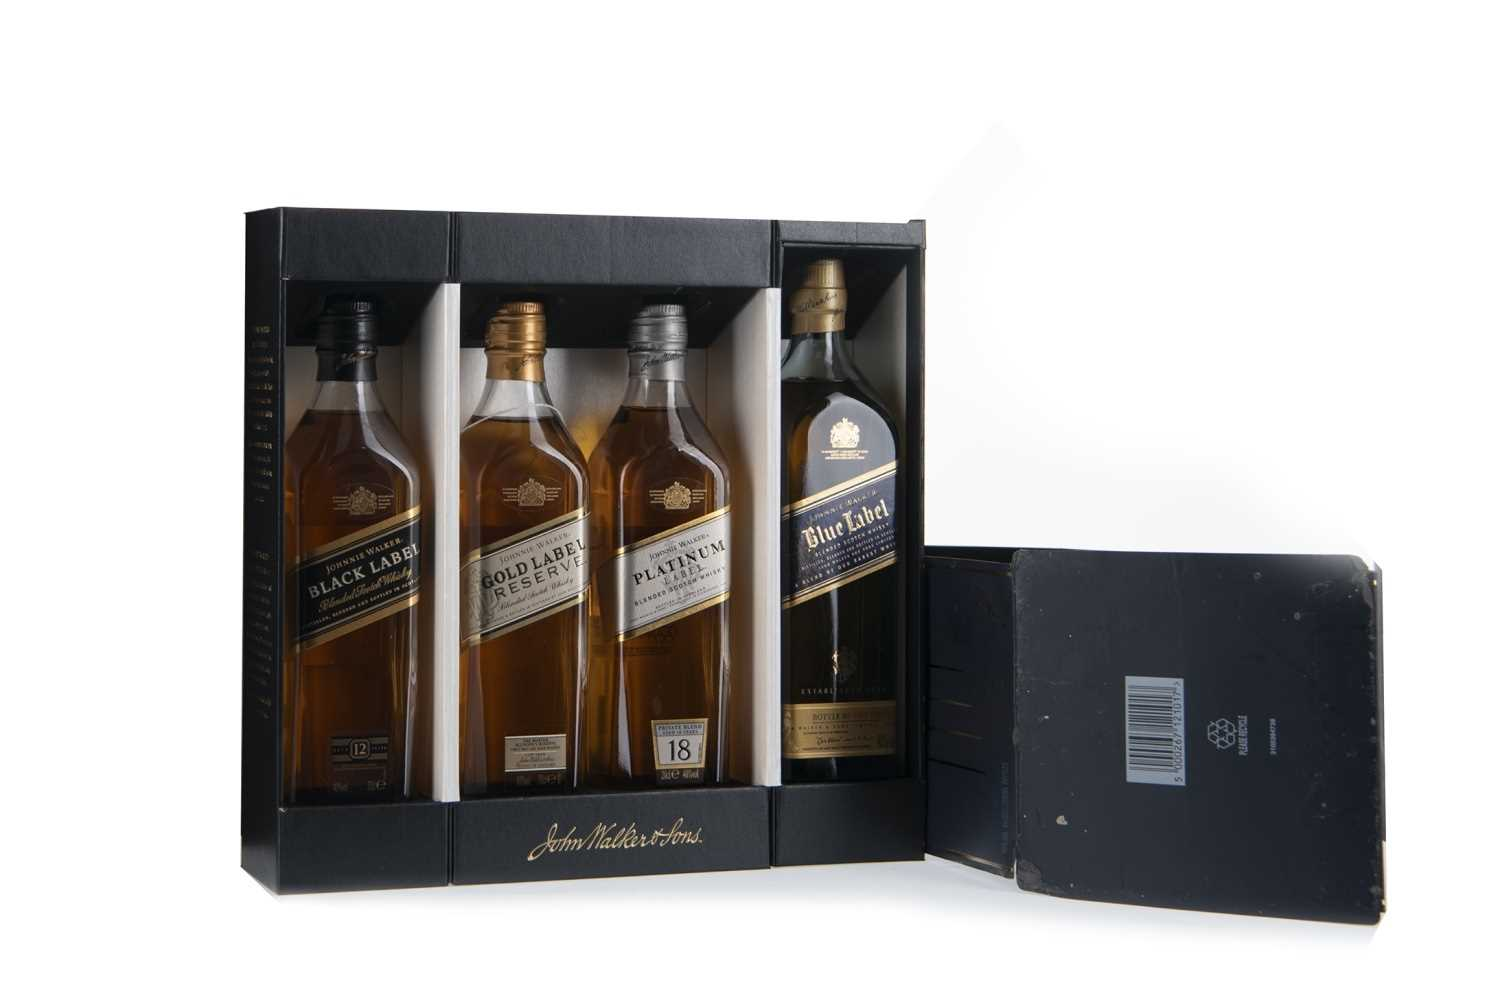 Lot 408 - JOHNNIE WALKER COLLECTION (4x20CL)